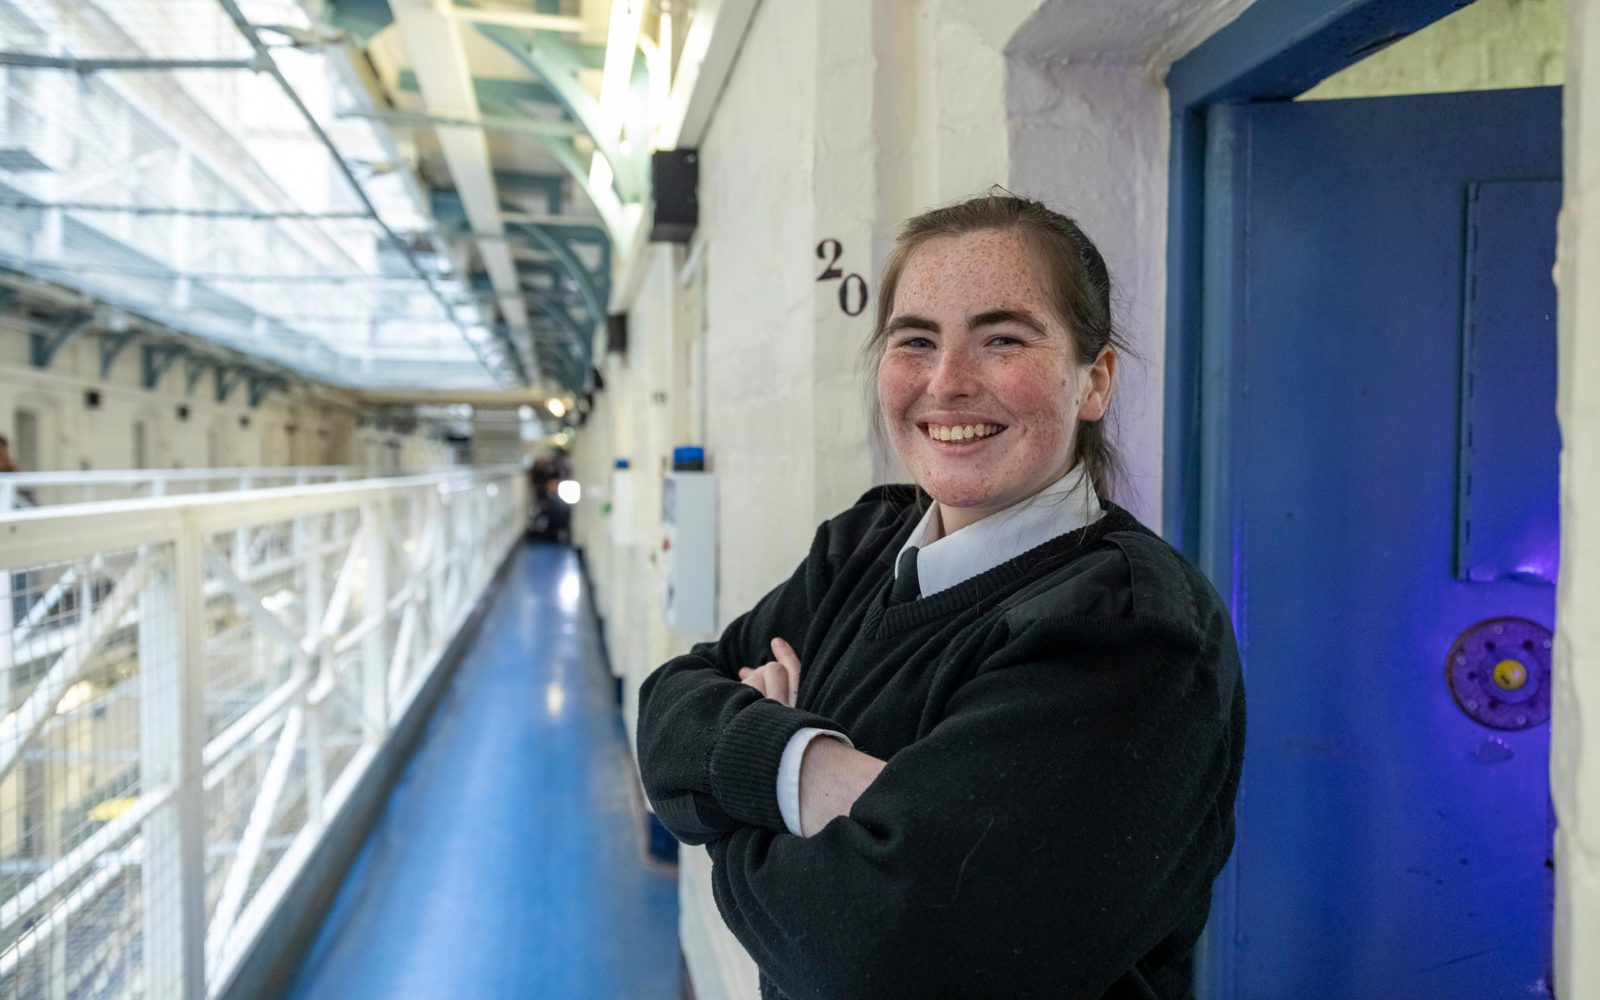 Shepton Mallet Prison Special Education Needs Trips